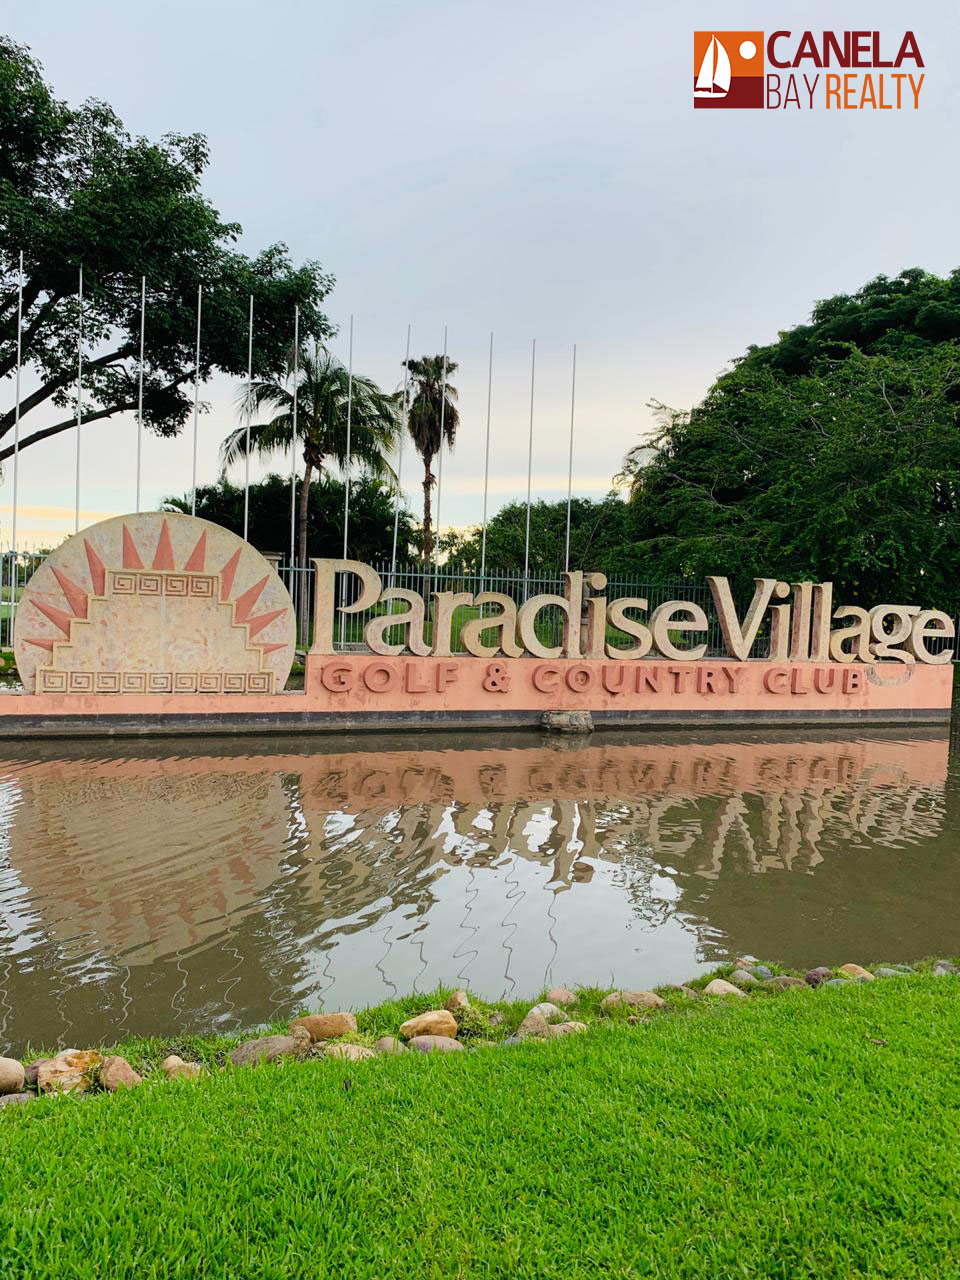 For Rent Apartment in Paradise Village & Golf Country Club Nuevo Vallarta